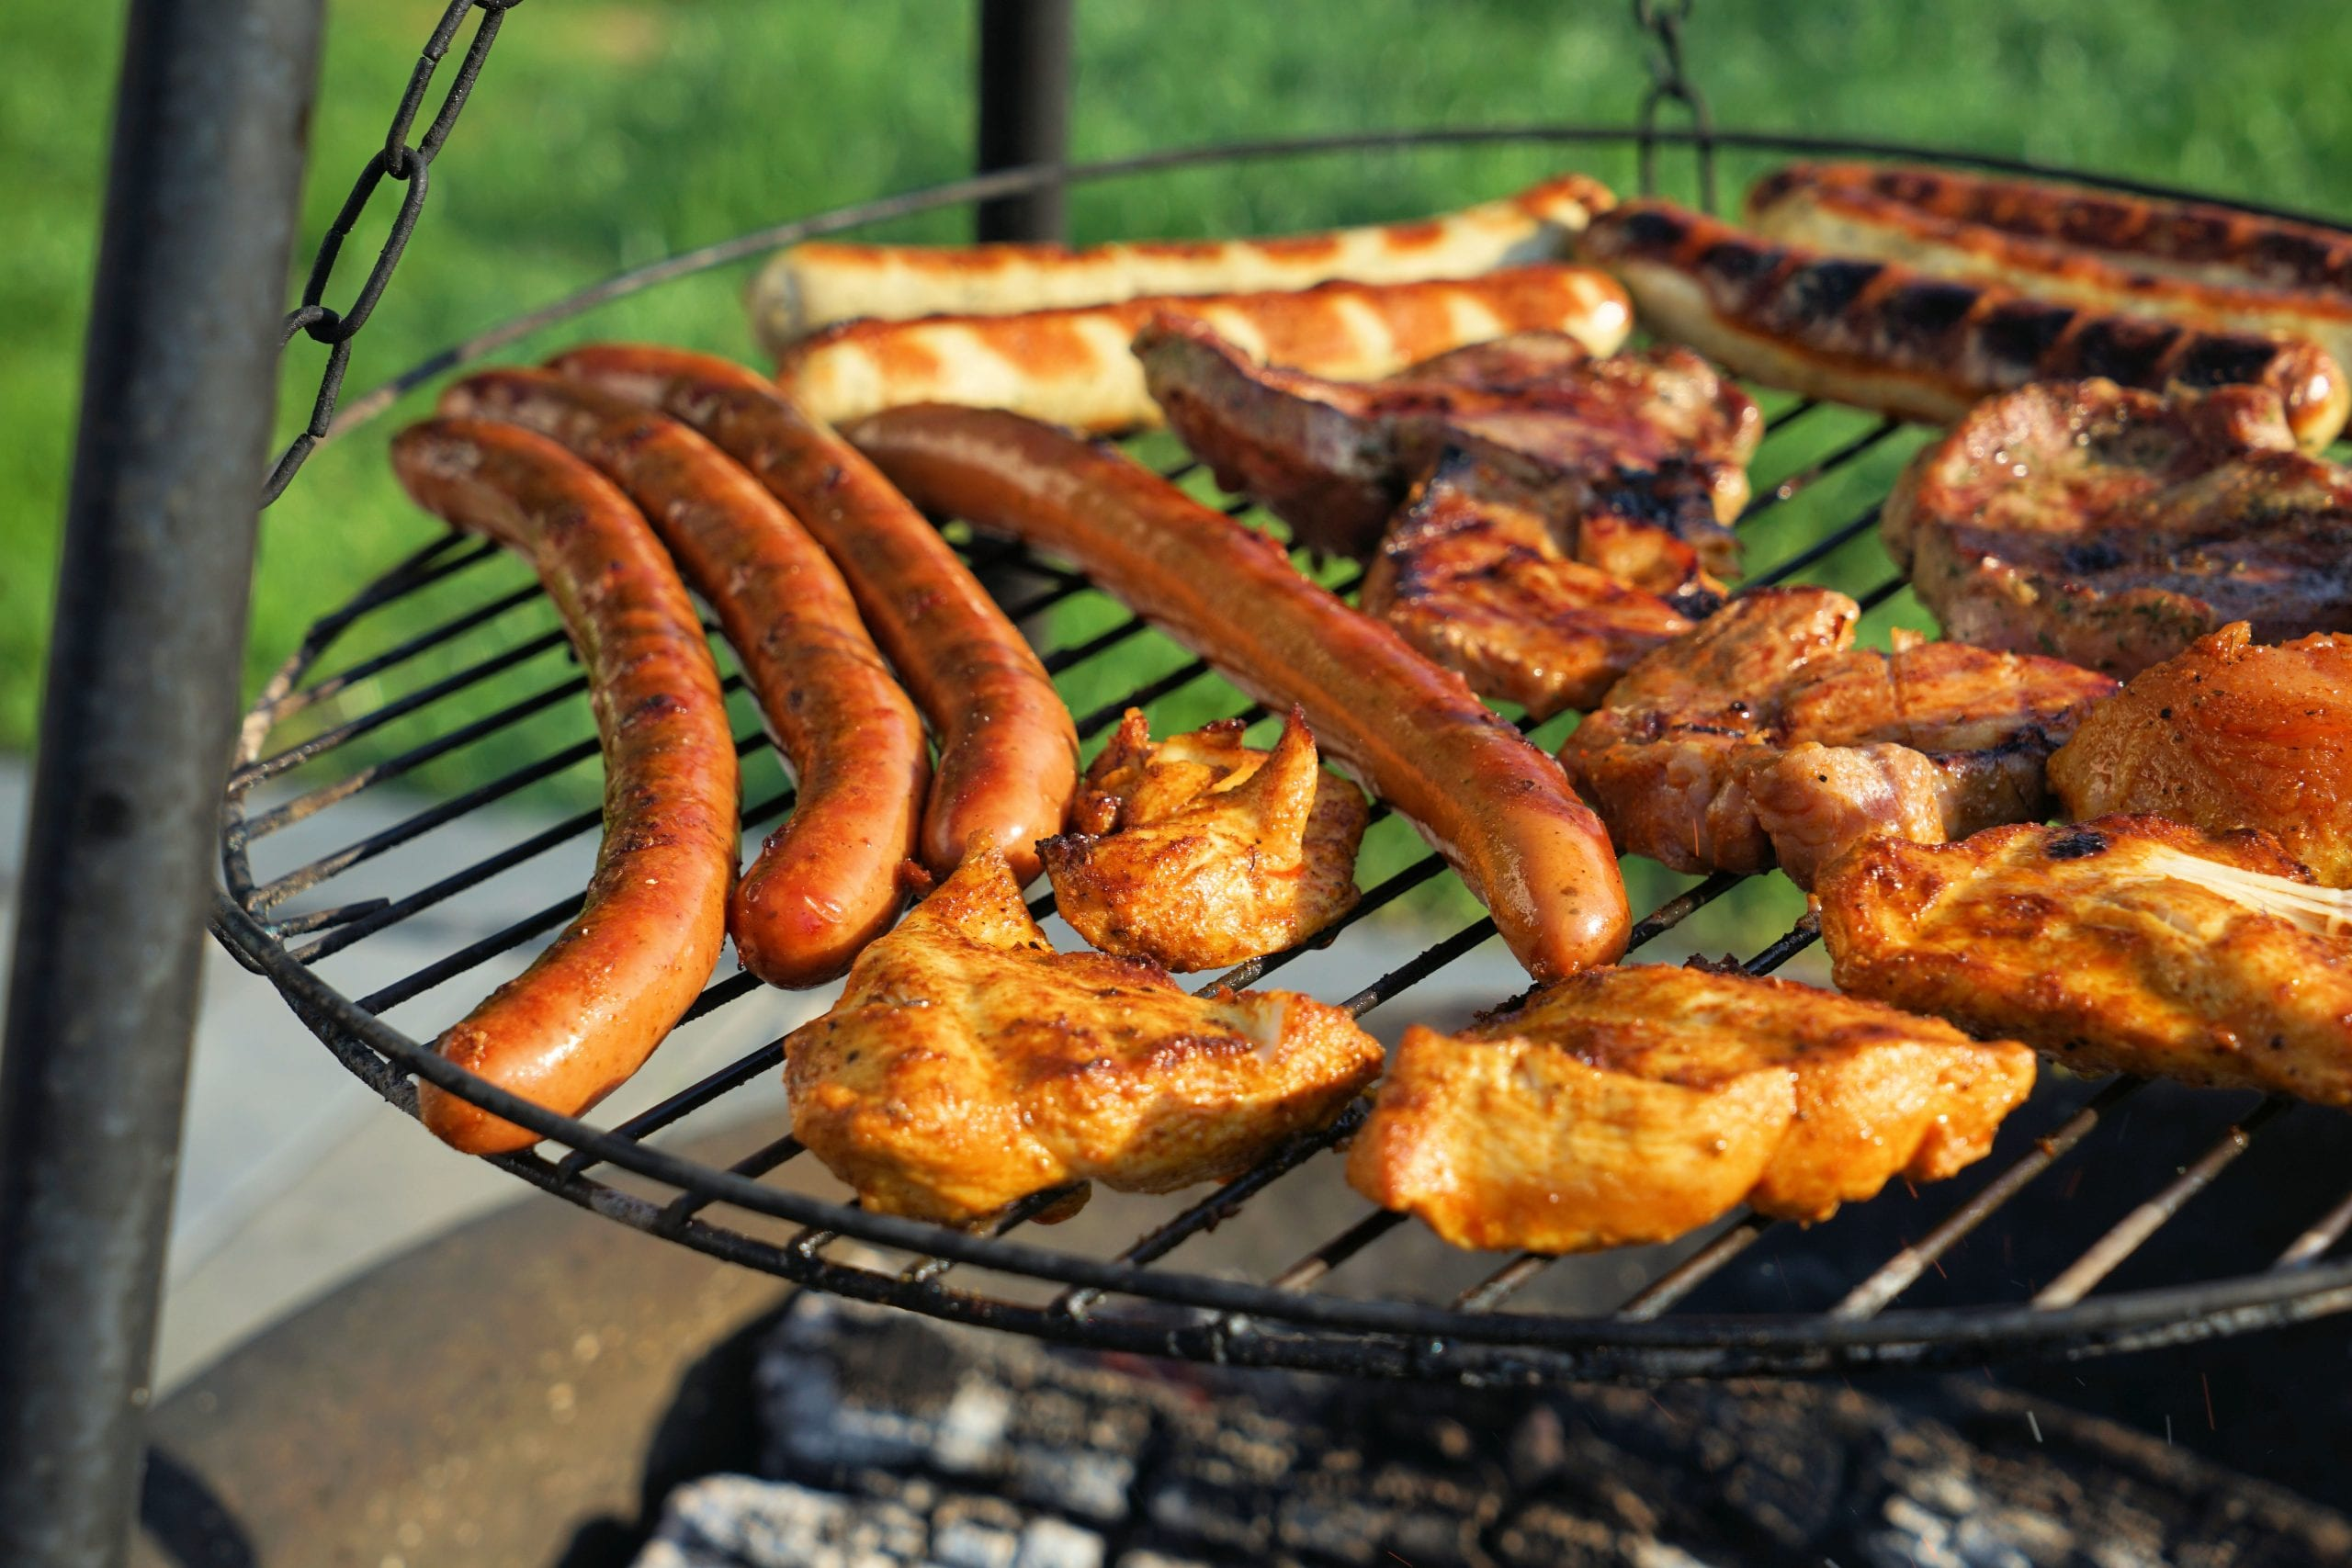 barbecue, grill, grilled meats